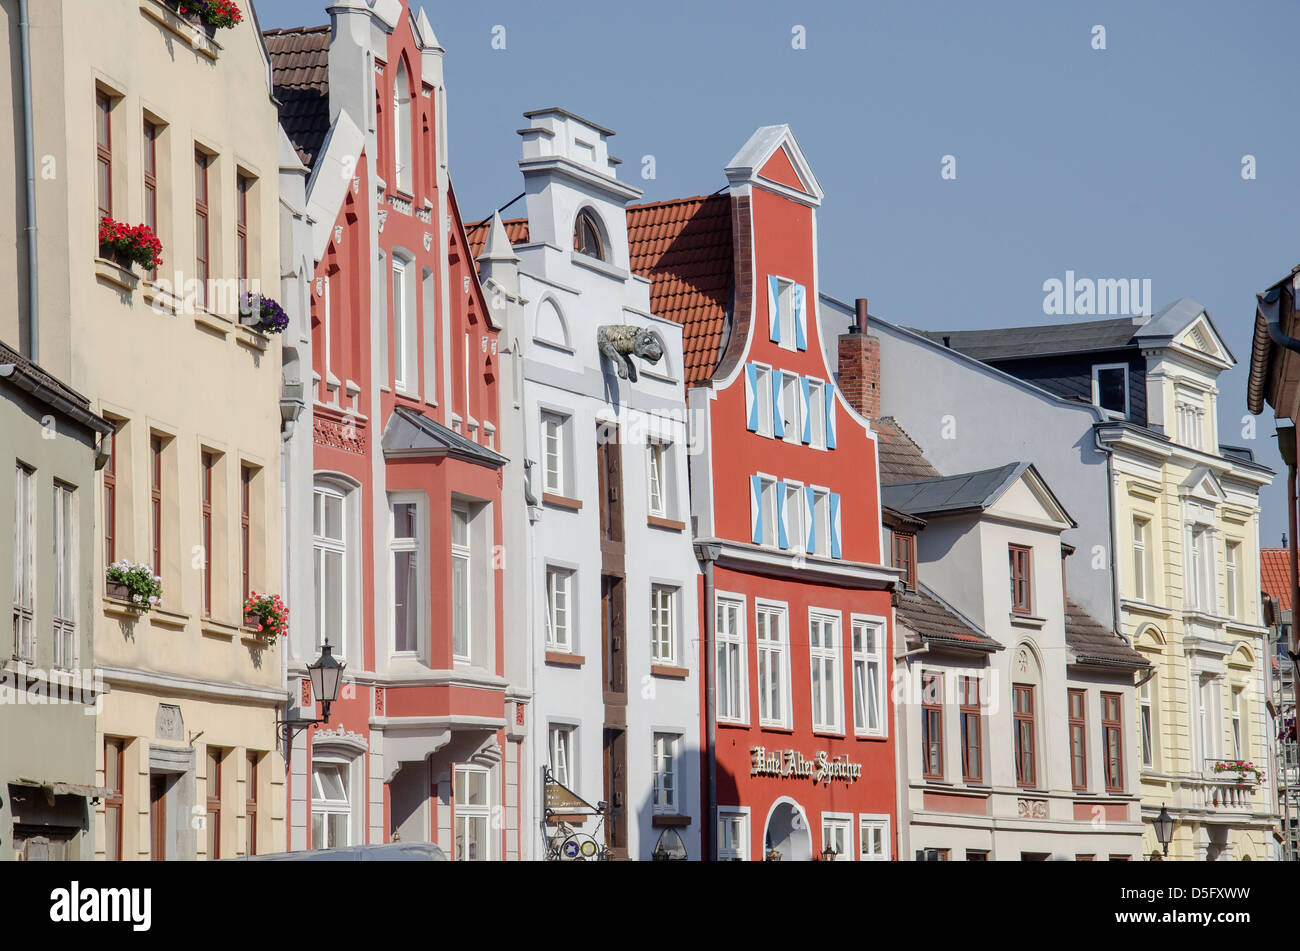 House wall front facing town square - Stock Image